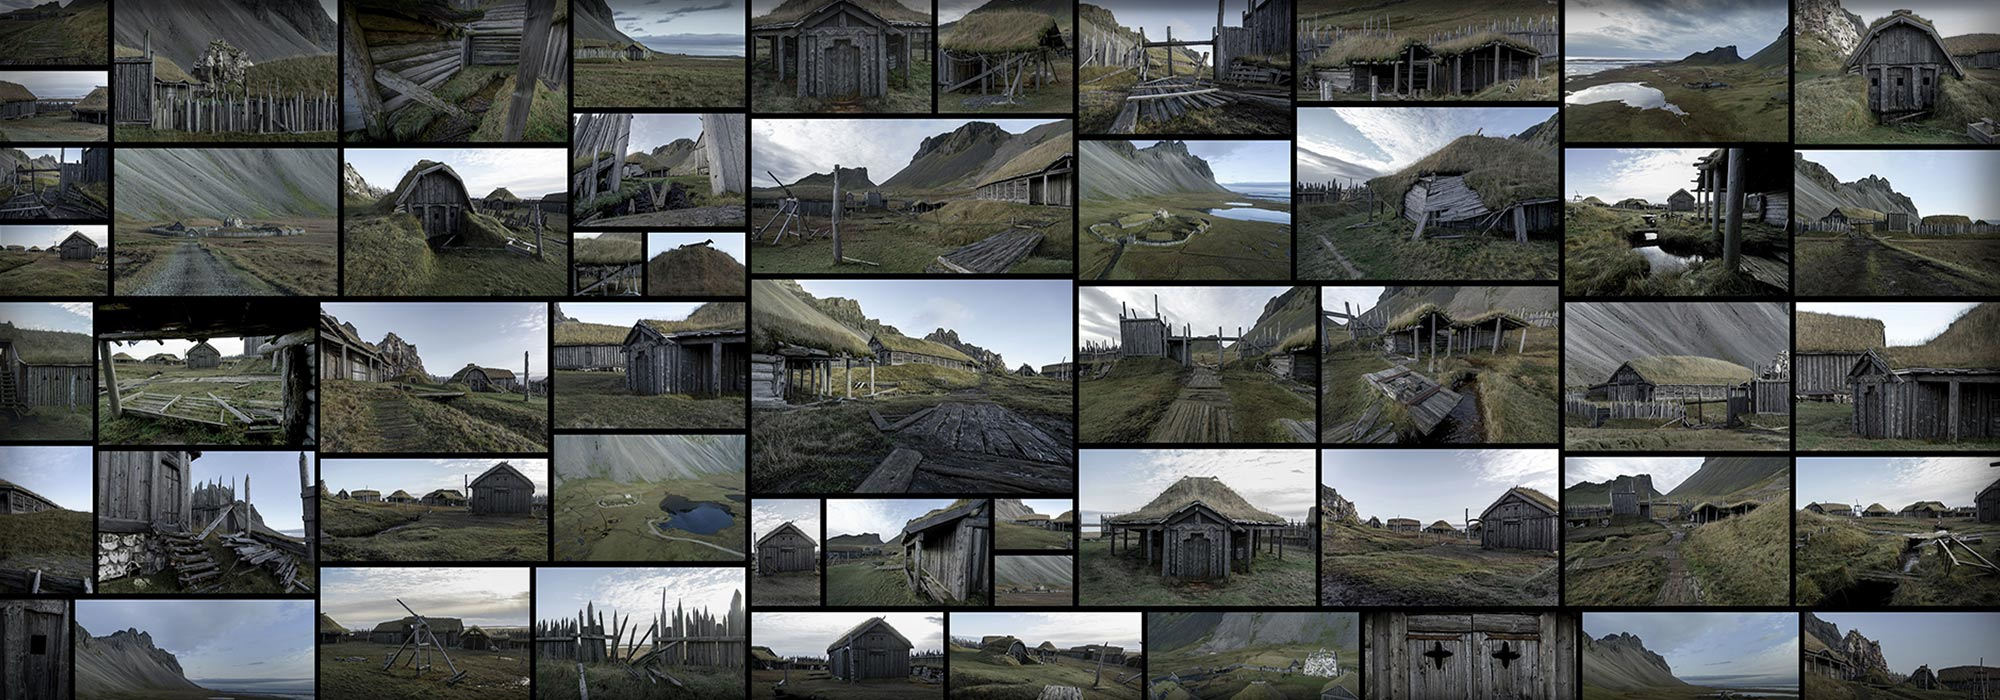 Viking Output Ancient Abandoned Village